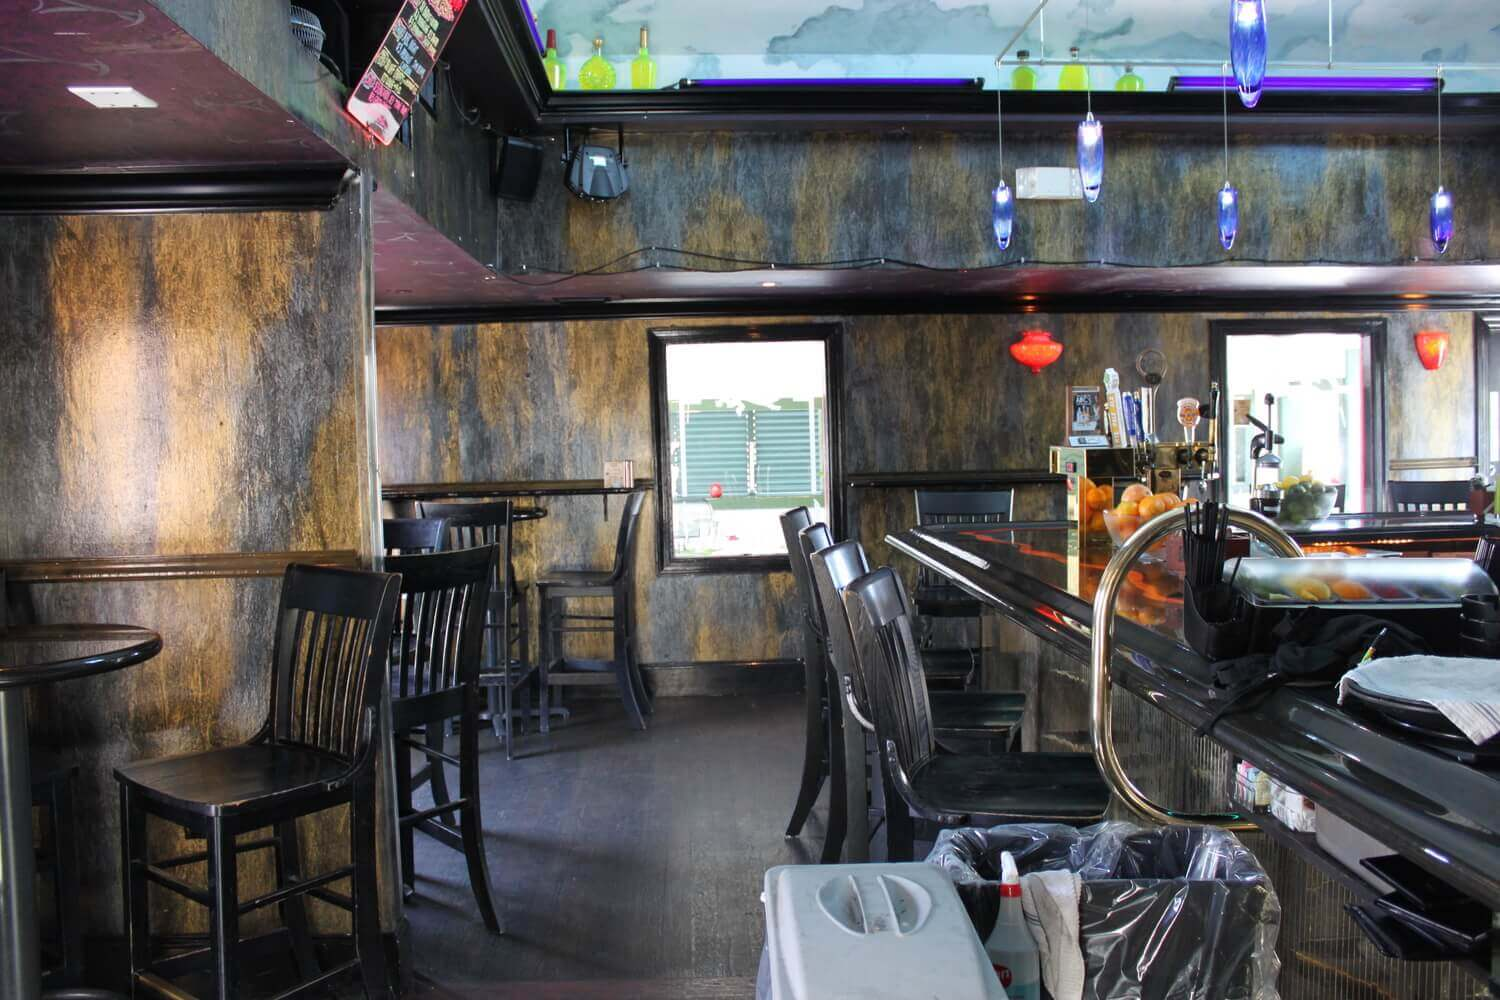 Plan Your Next Event at Mainstreet Pub & Restaurant in Melbourne, FL.